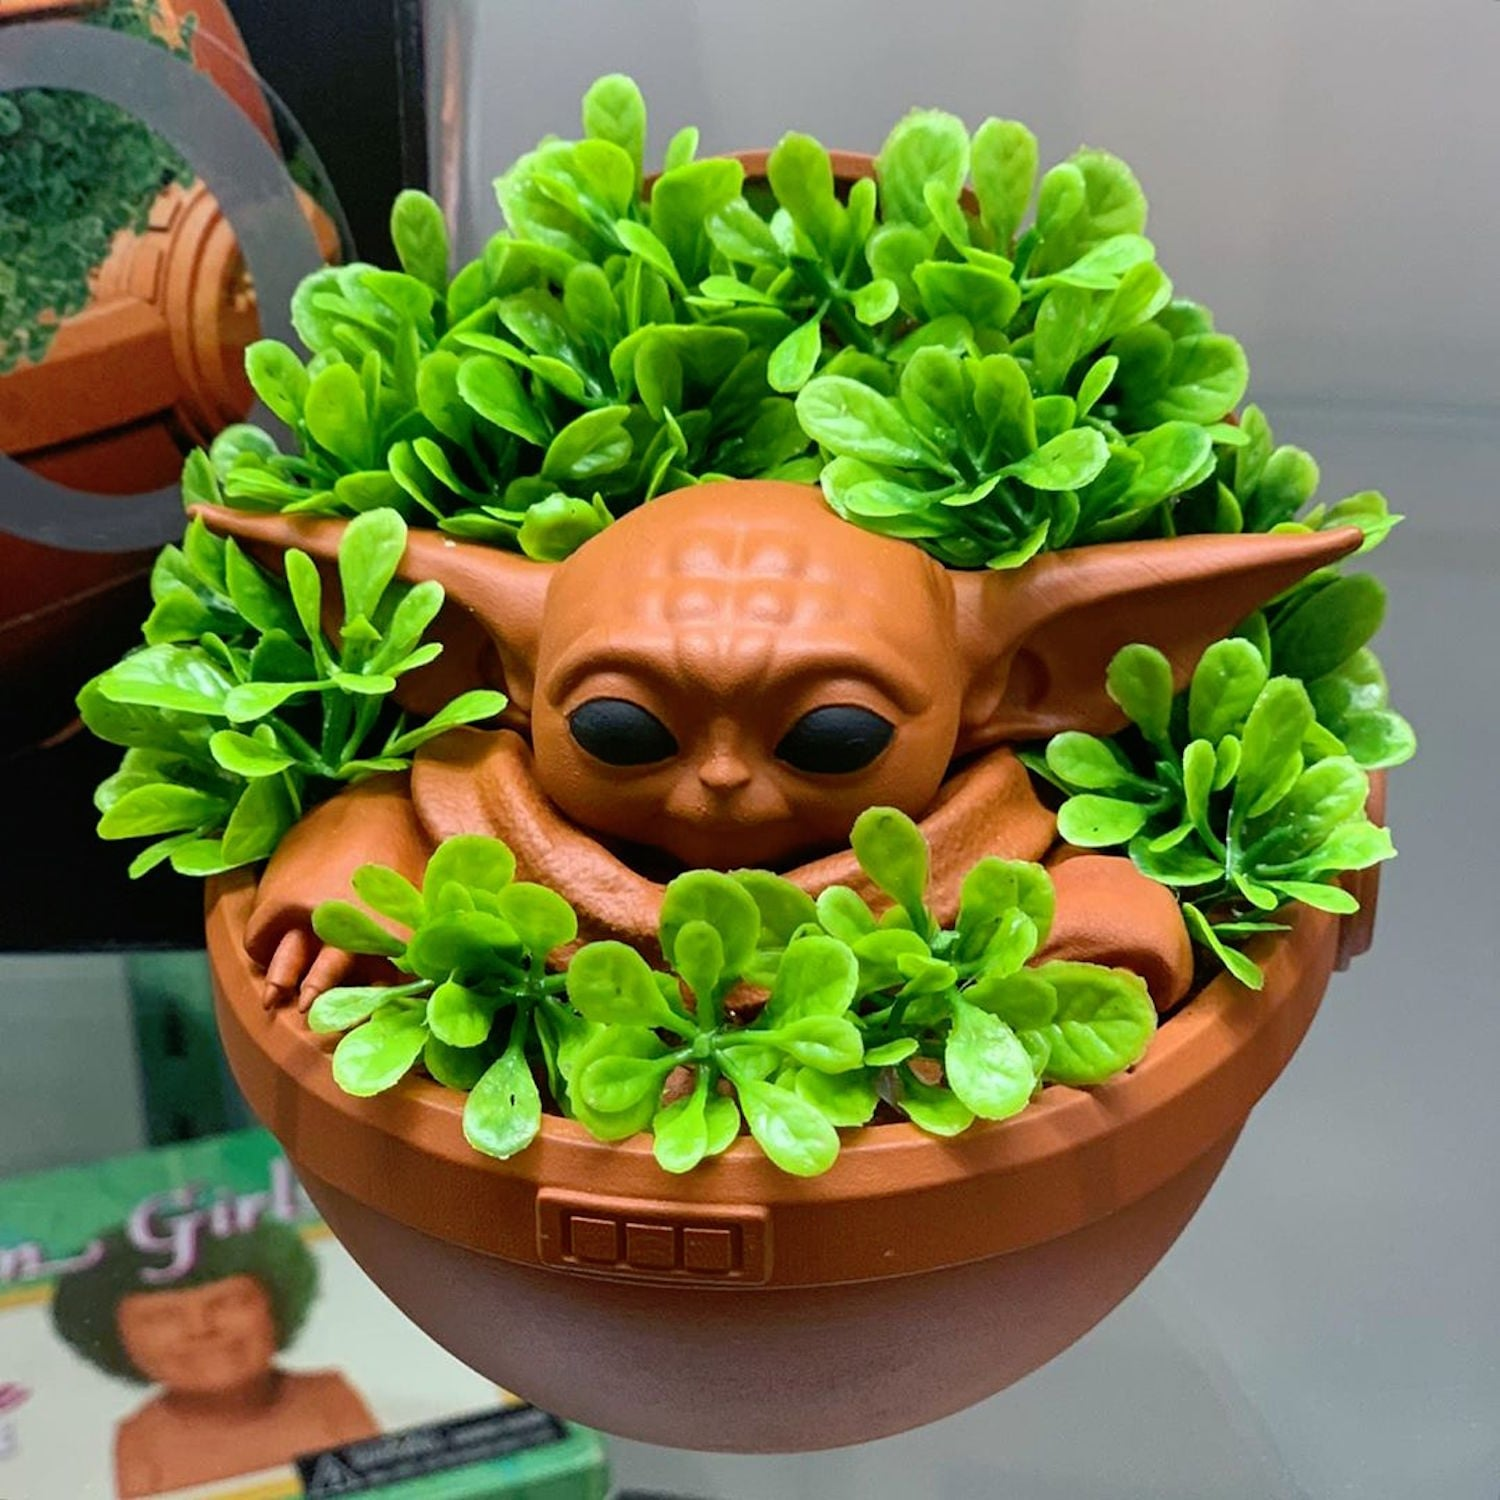 Baby Yoda Chia Pets Are Coming Out Soon Popsugar Home